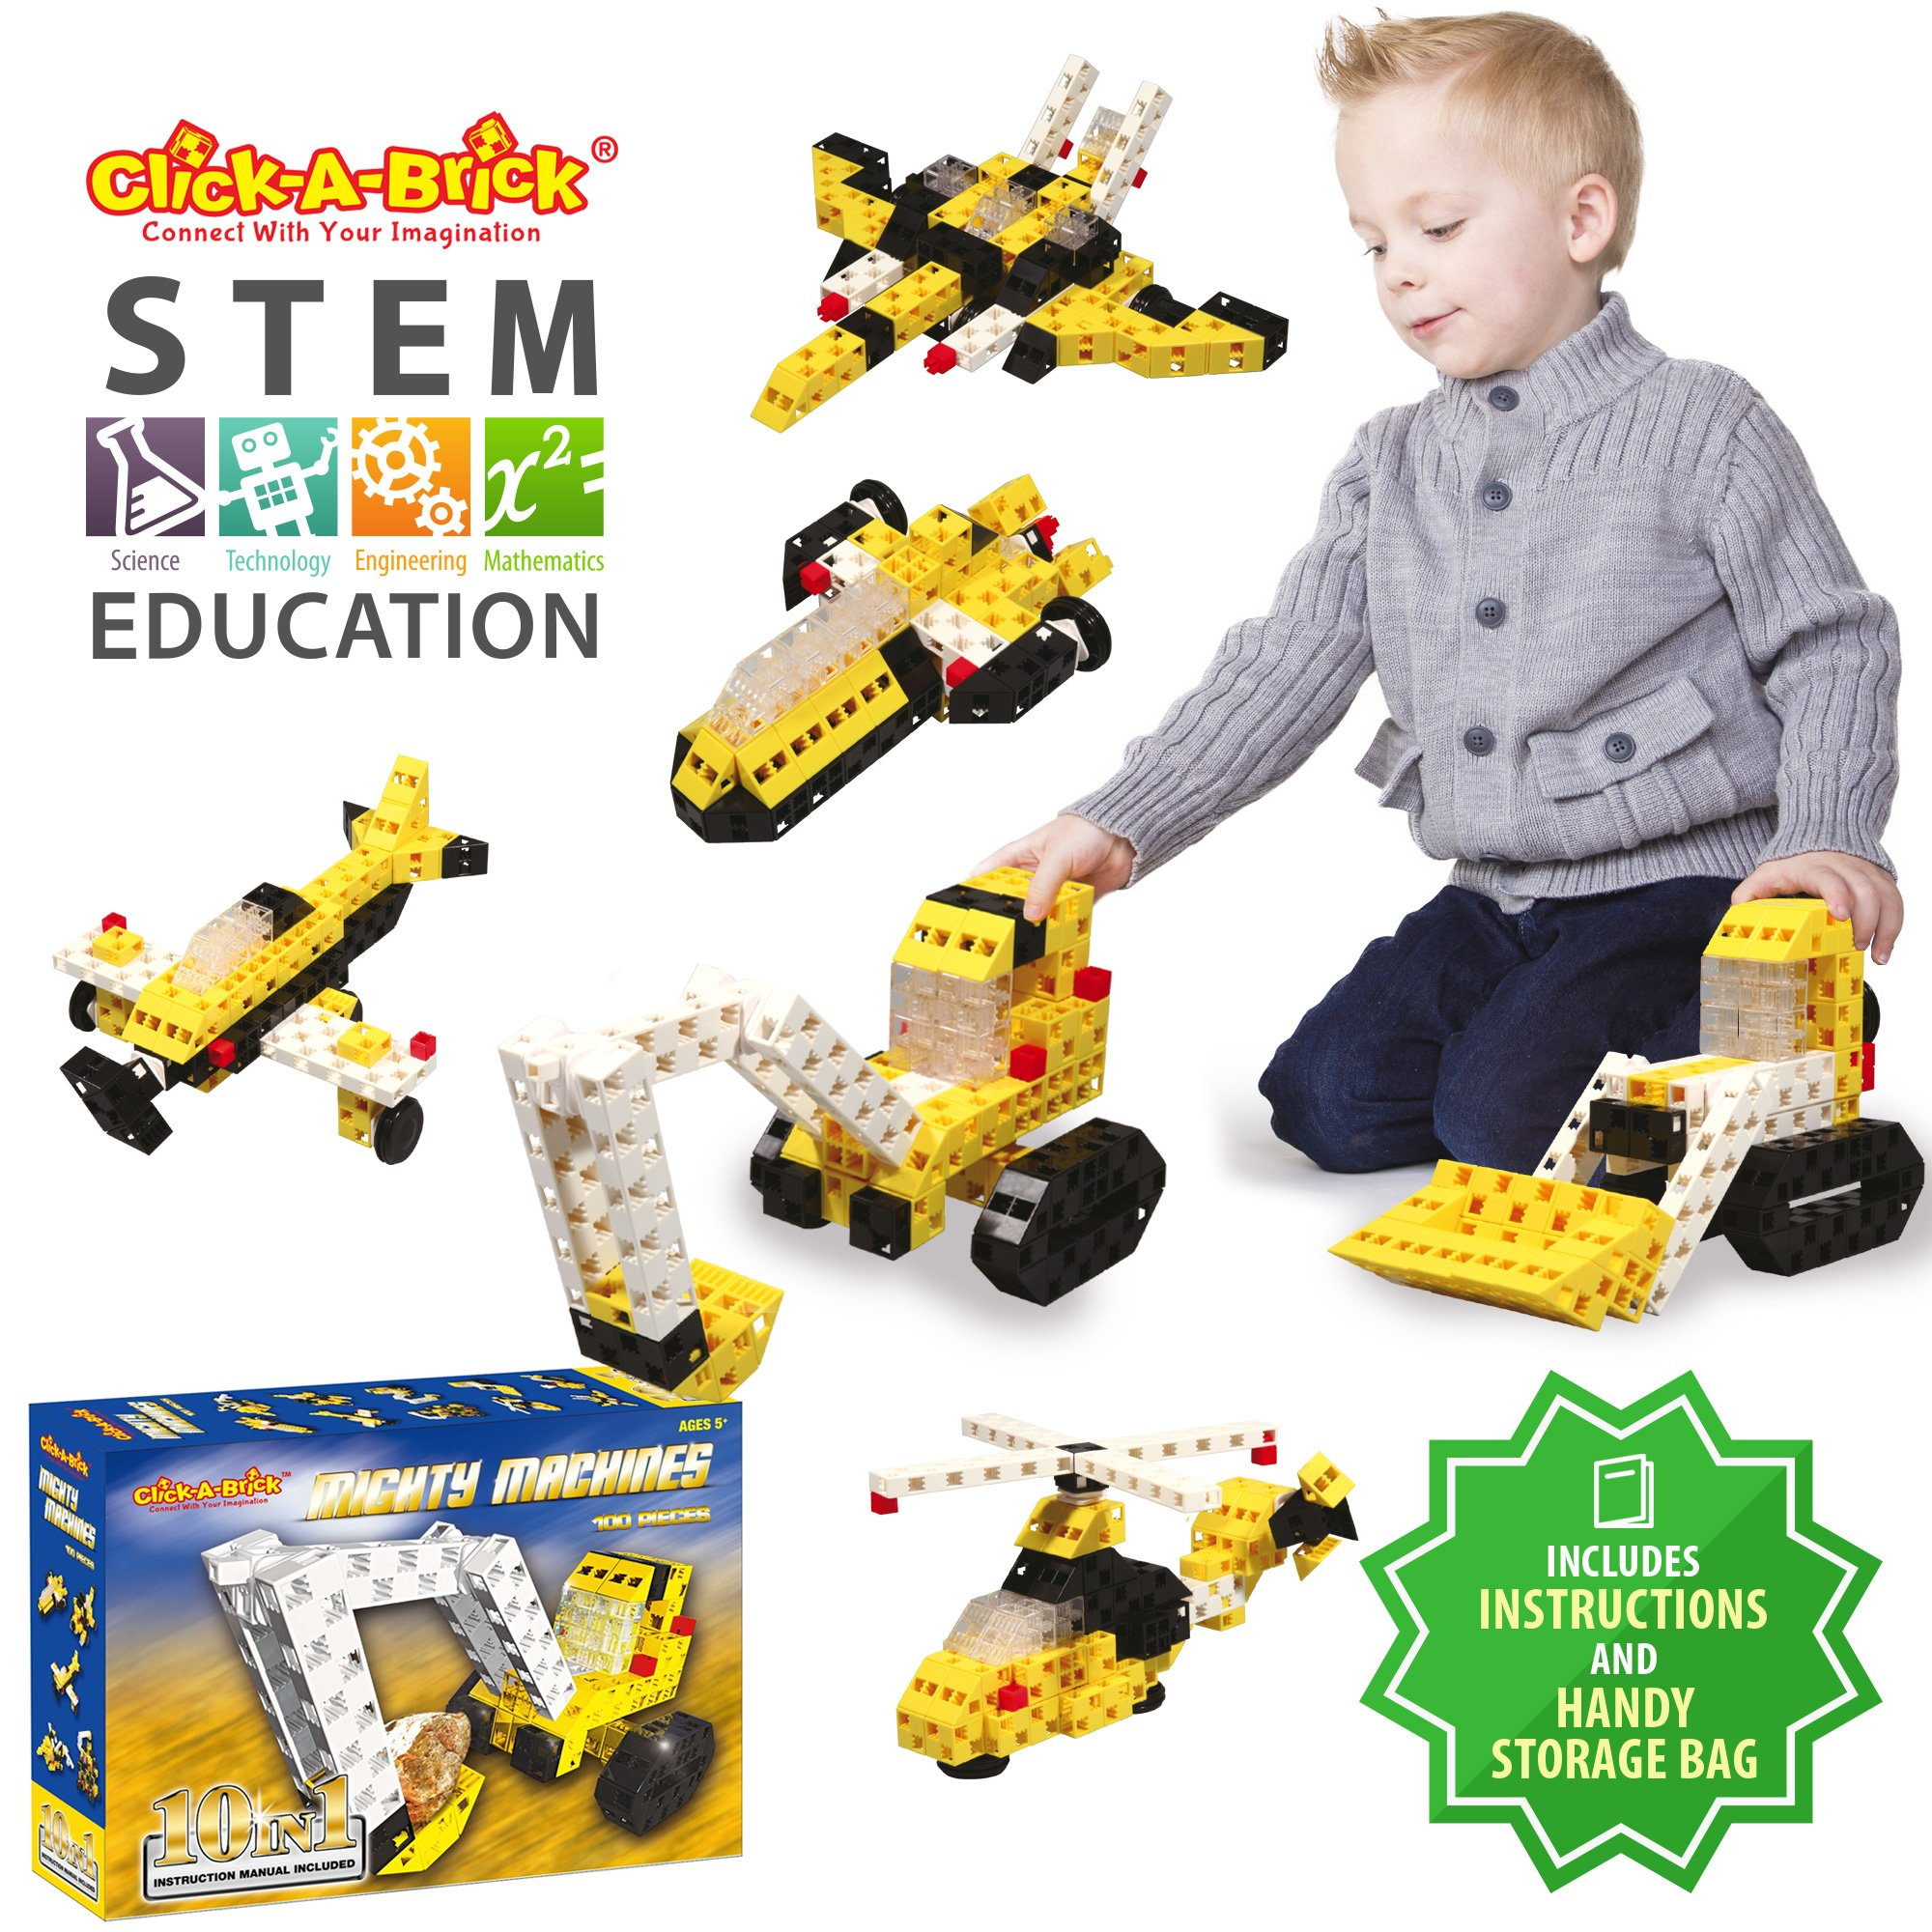 Best Gift for 5 Year Old Boy: Amazon.com